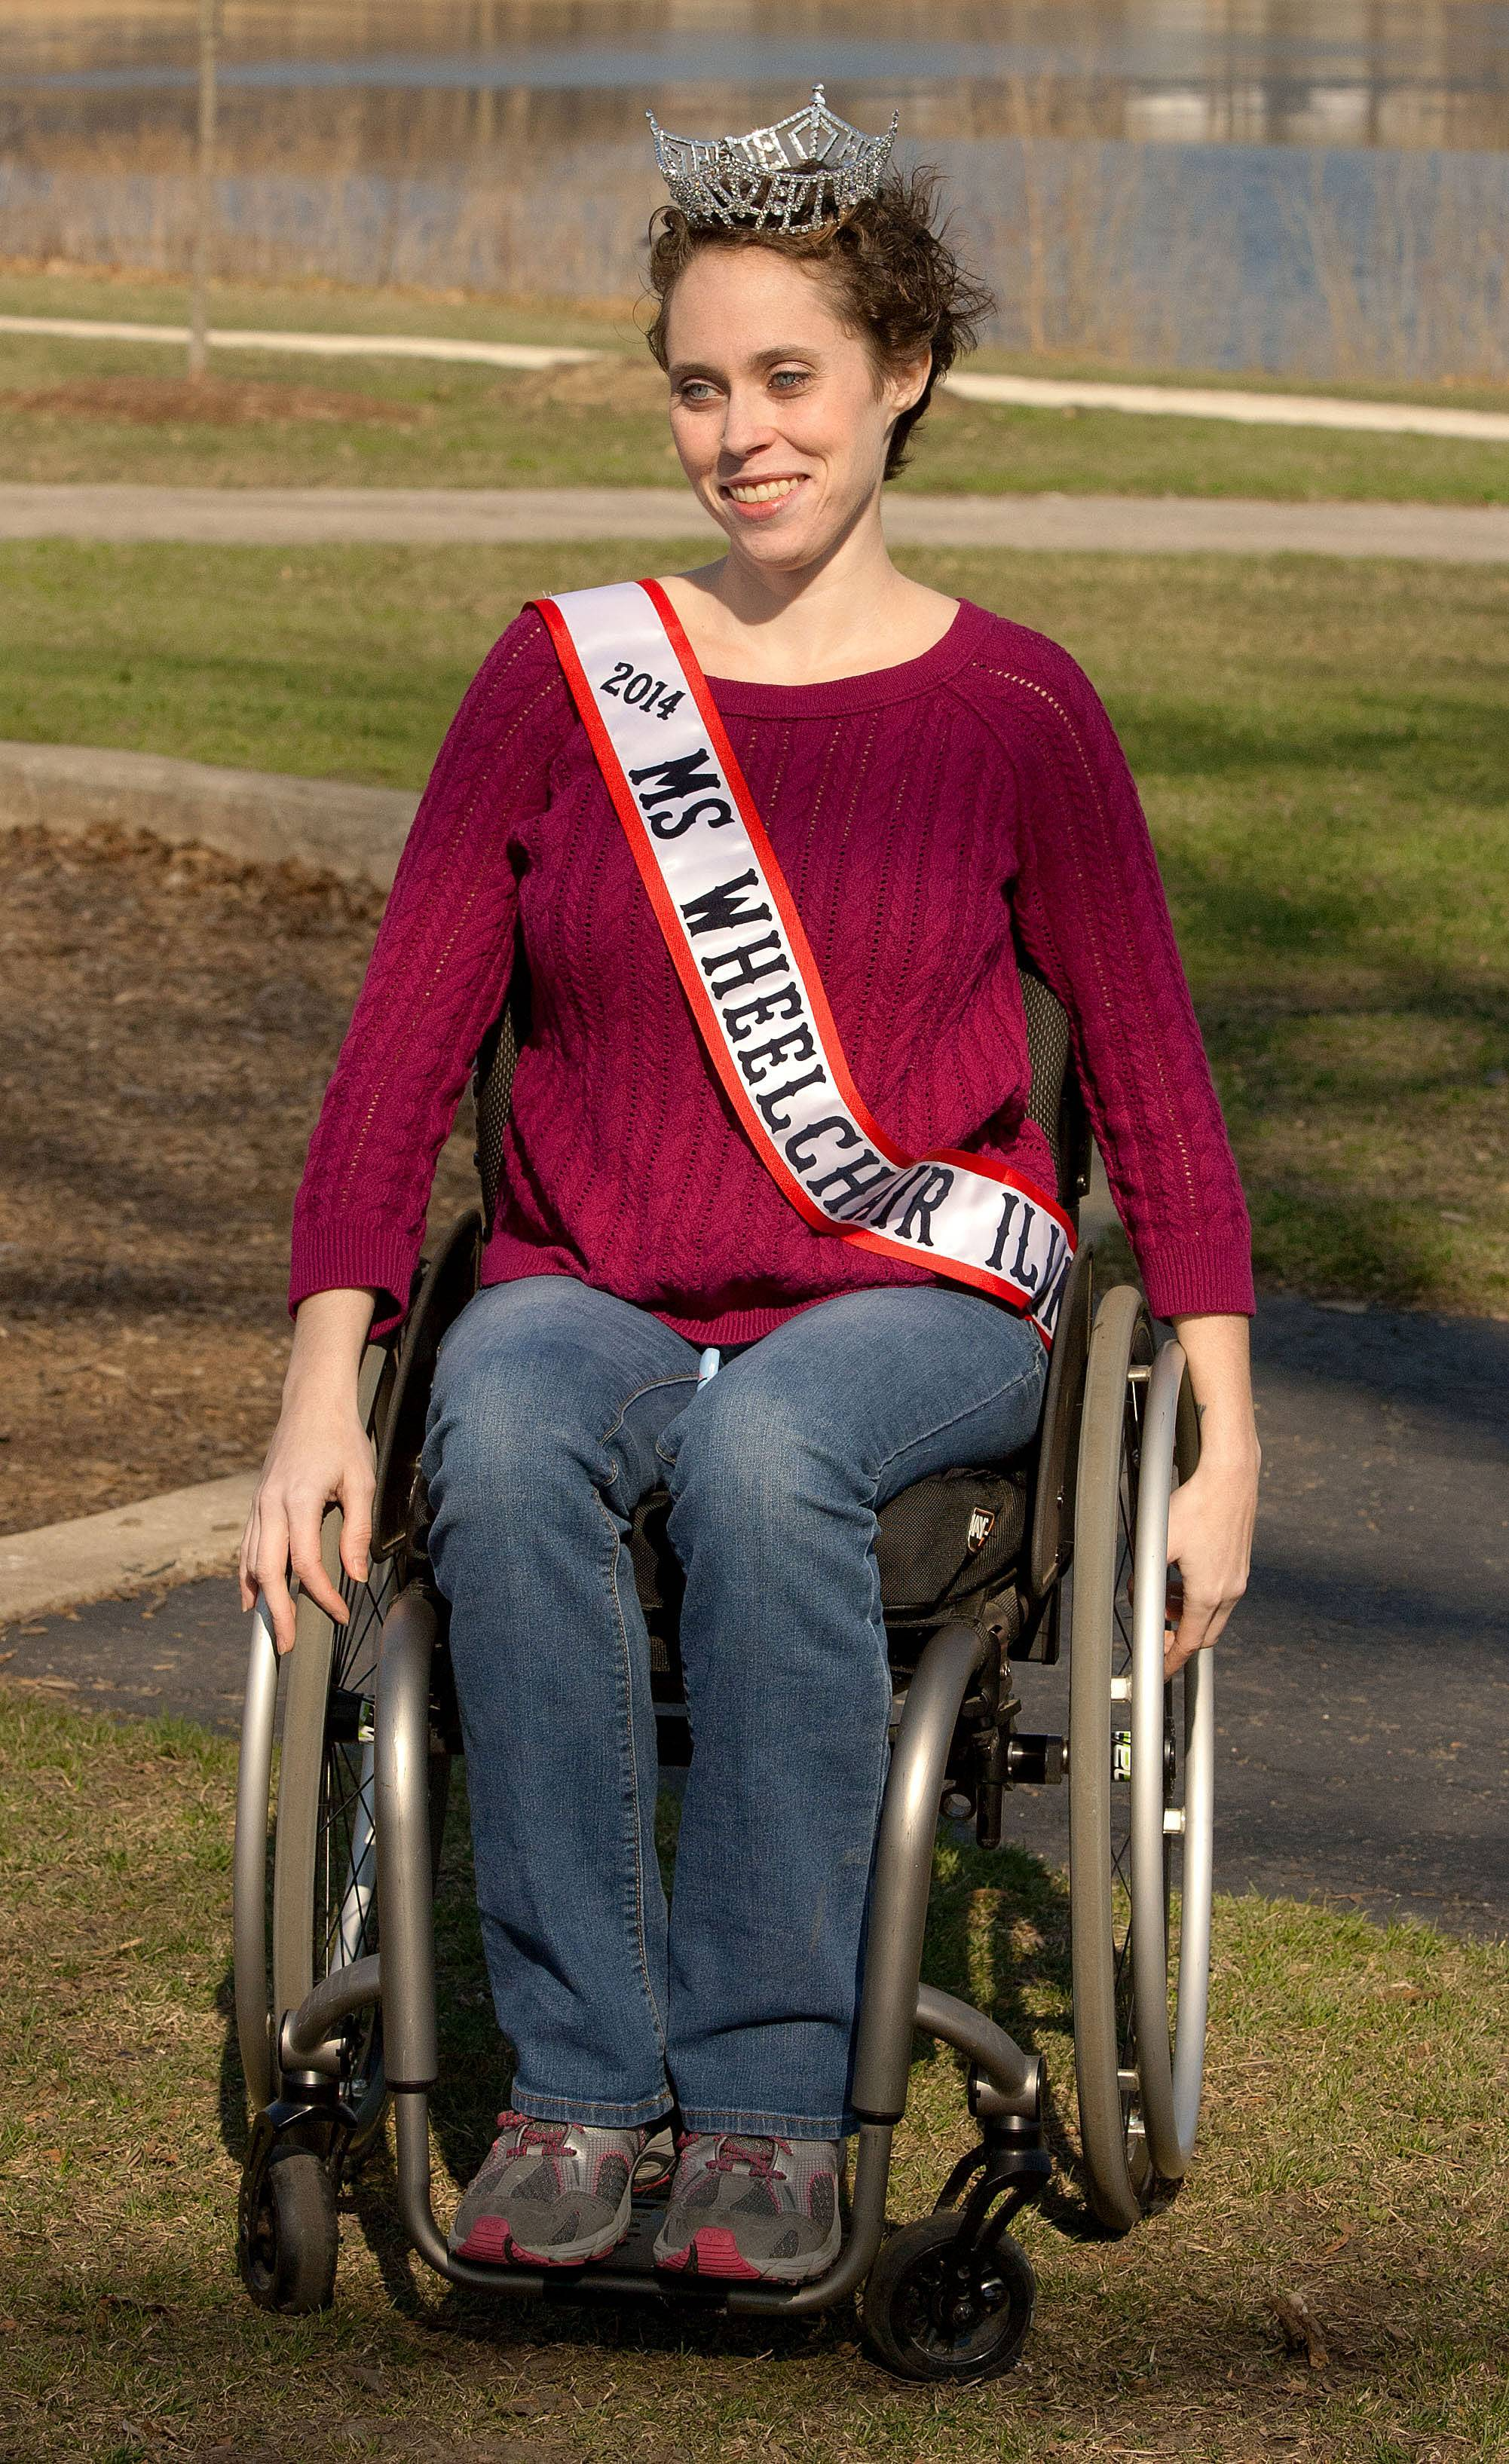 Lombard native Pearl Gannon recently was named Ms. Wheelchair Illinois. The 27-year-old hopes to use her title to raise awareness about disabilities and positive mental health for the disabled.